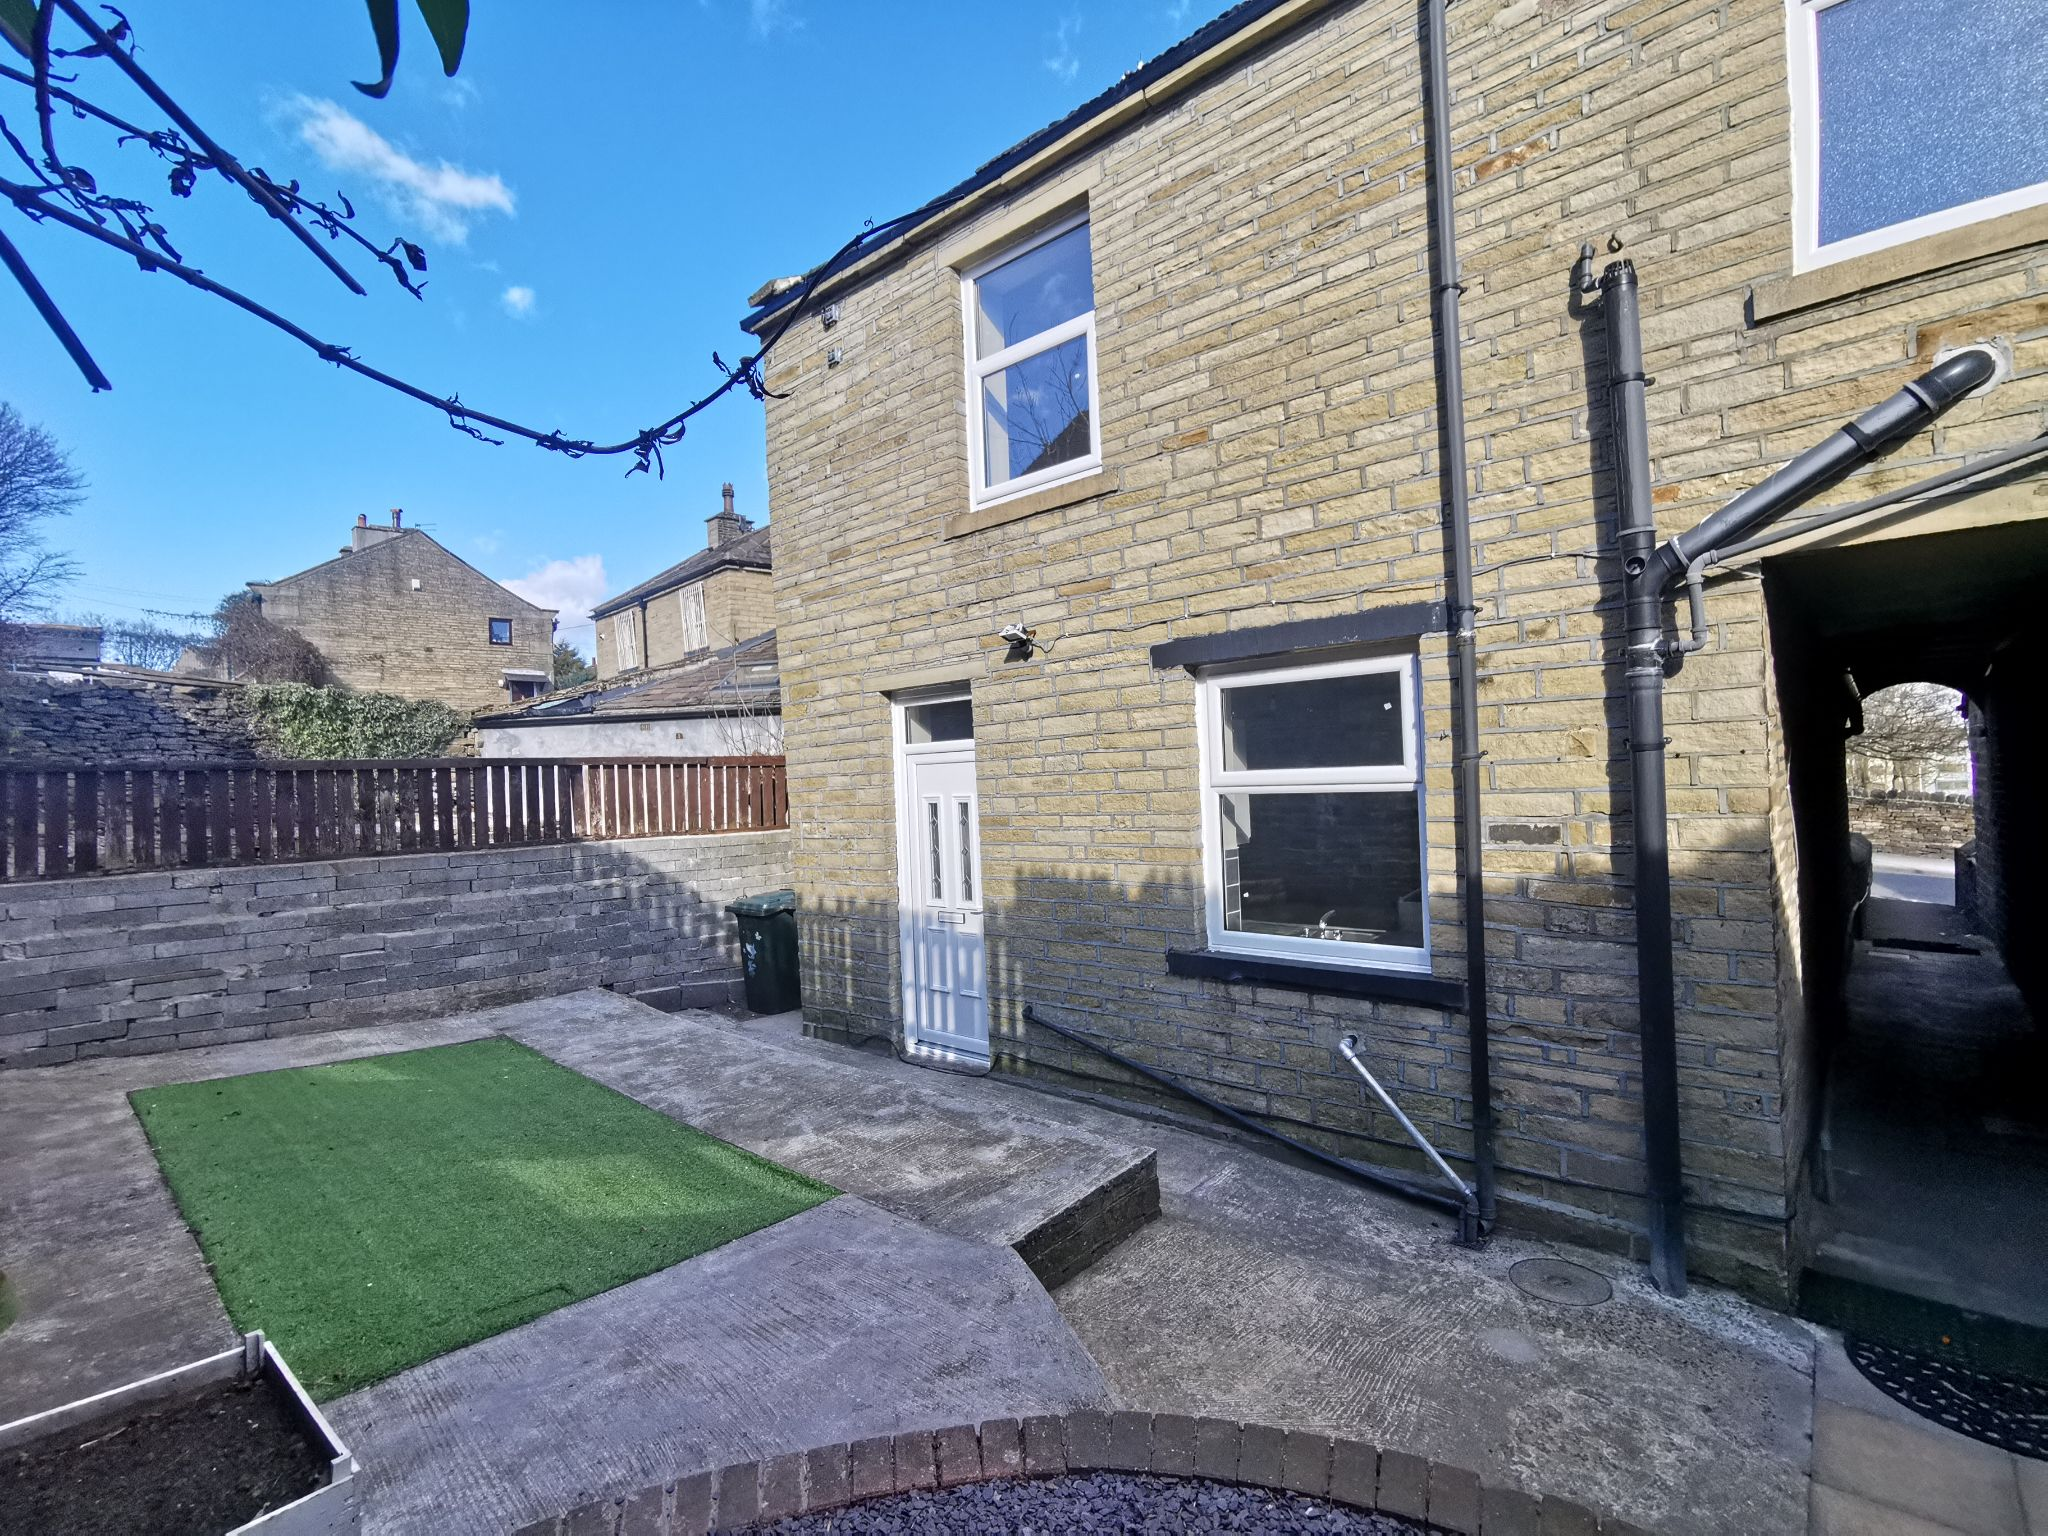 2 bedroom end terraced house SSTC in Bradford - Photograph 1.